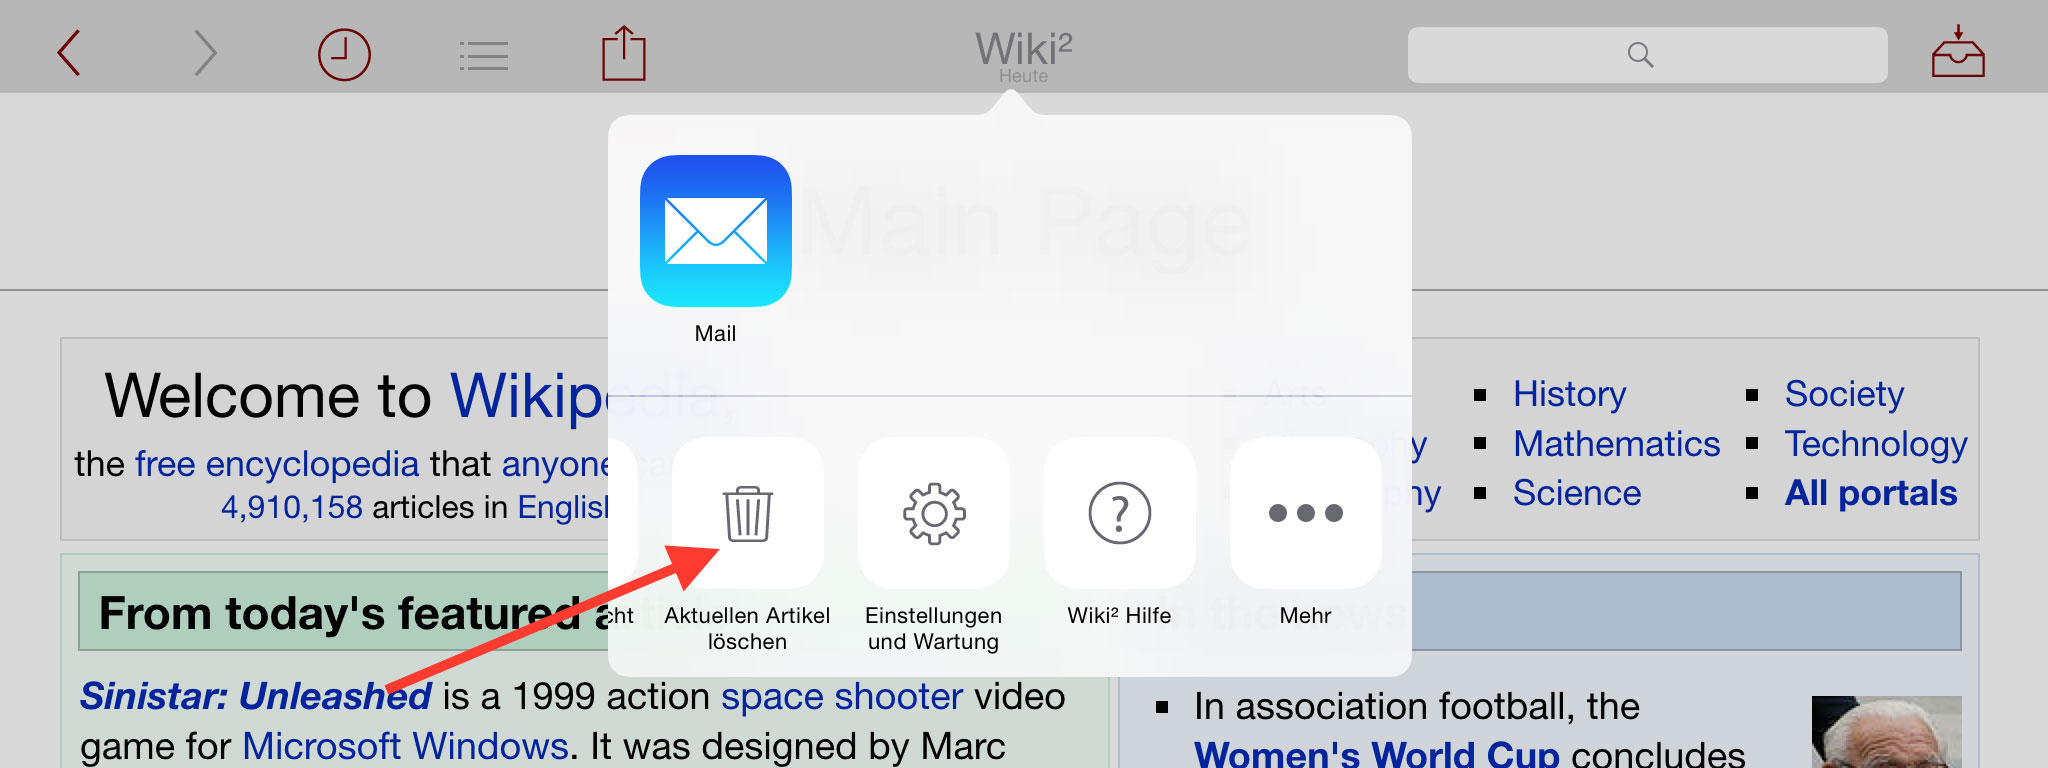 how to delete history on ipad one by one